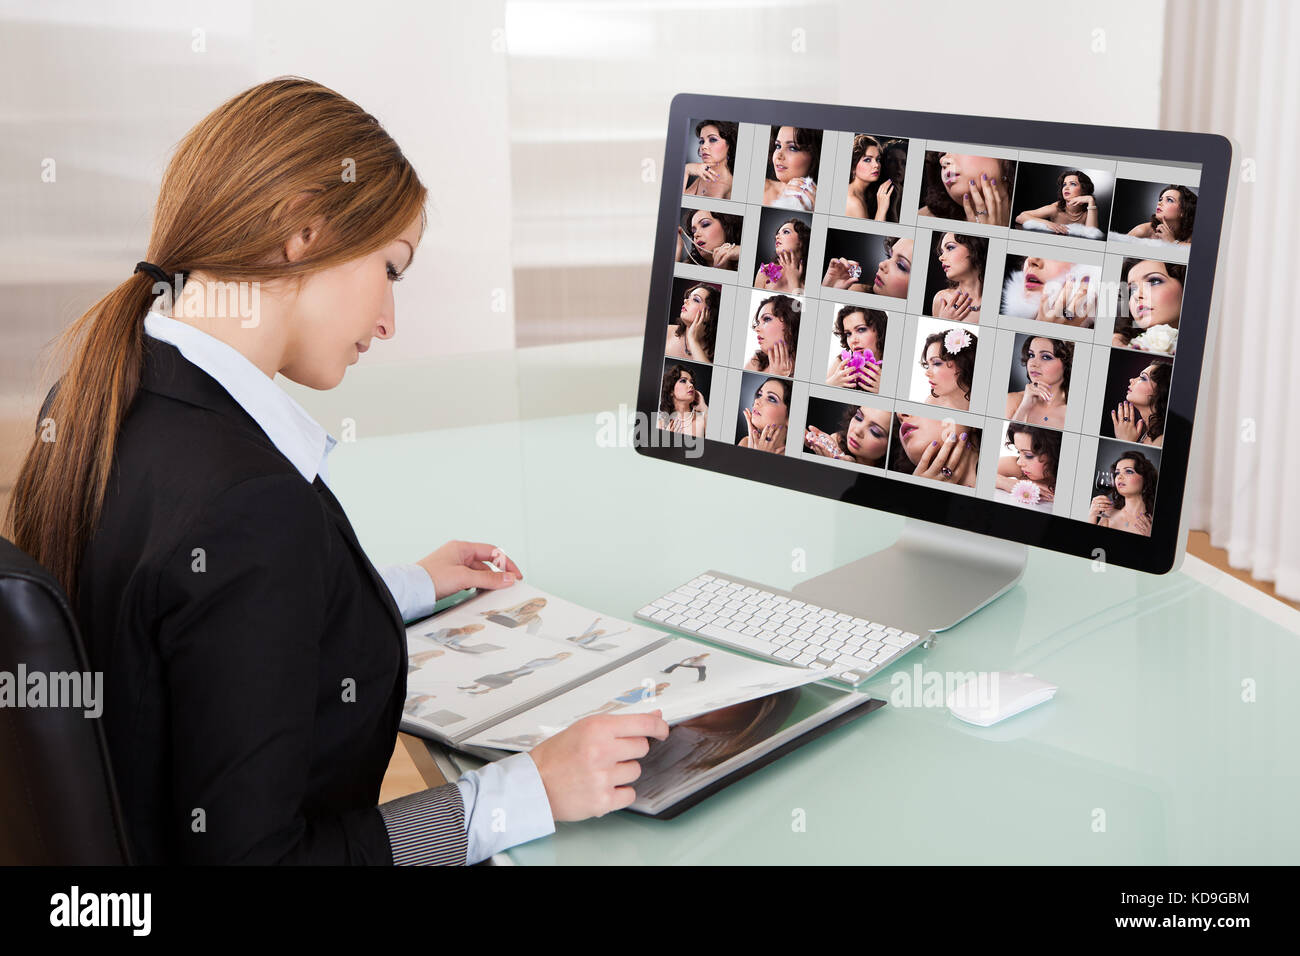 Designer Woman Working On Computer In The Office - Stock Image